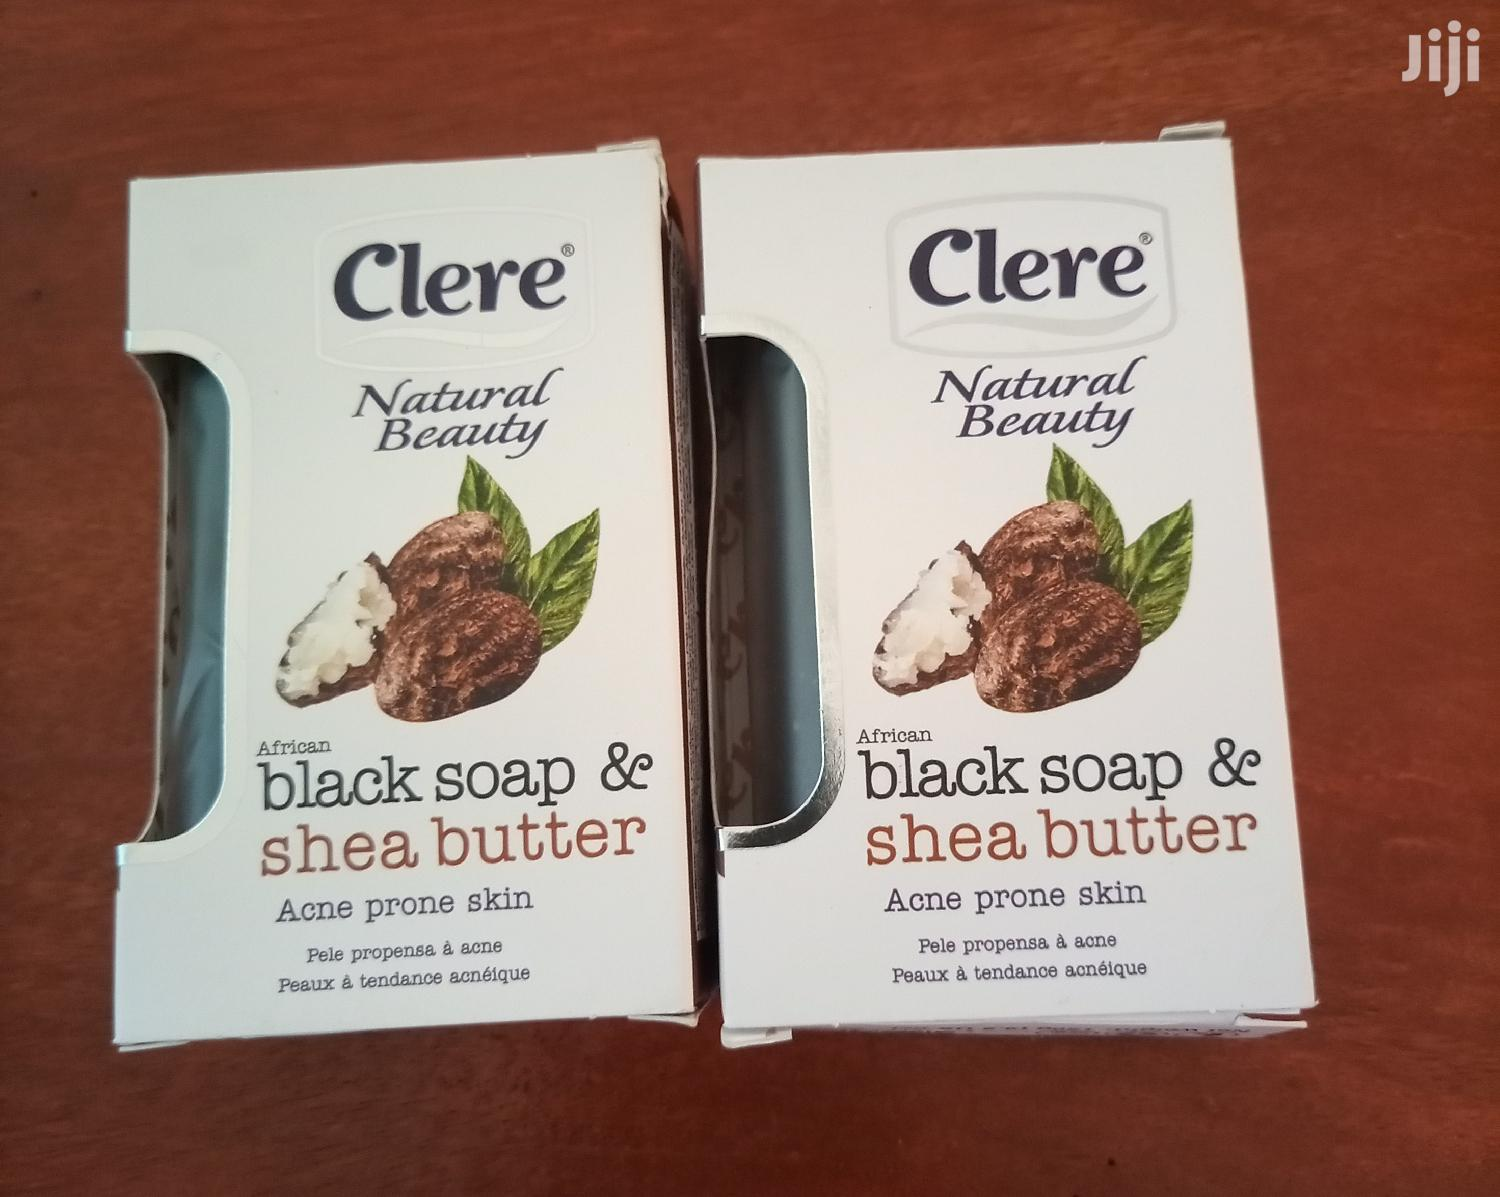 Clere Natural Beauty Soap